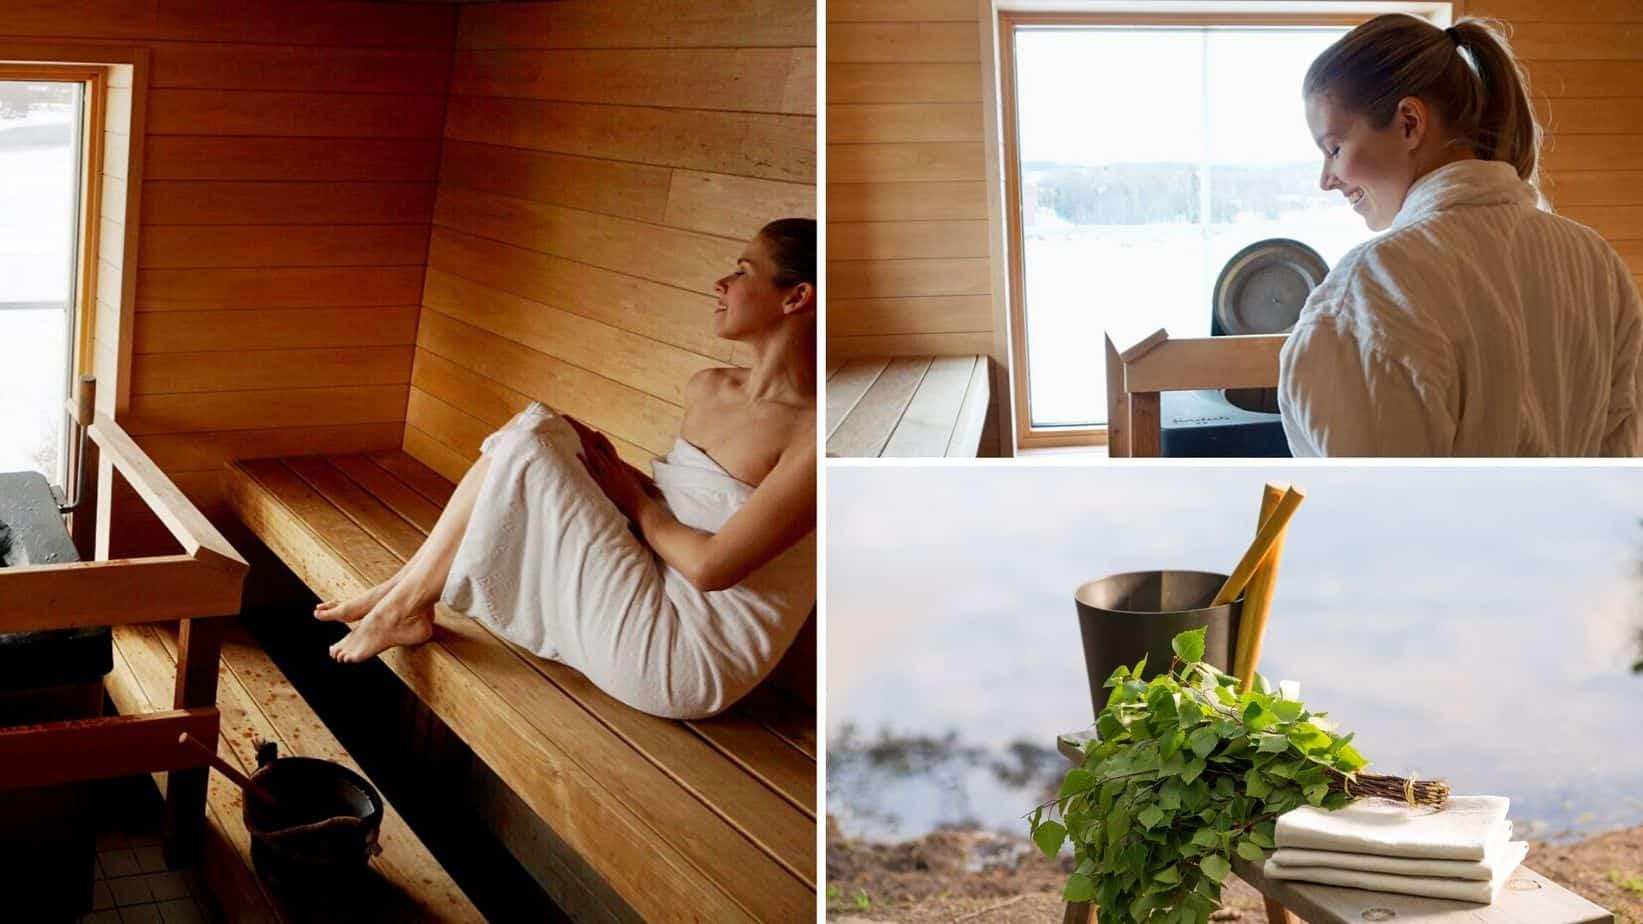 Sauna in Physical Therapy Practice - Saunatimes